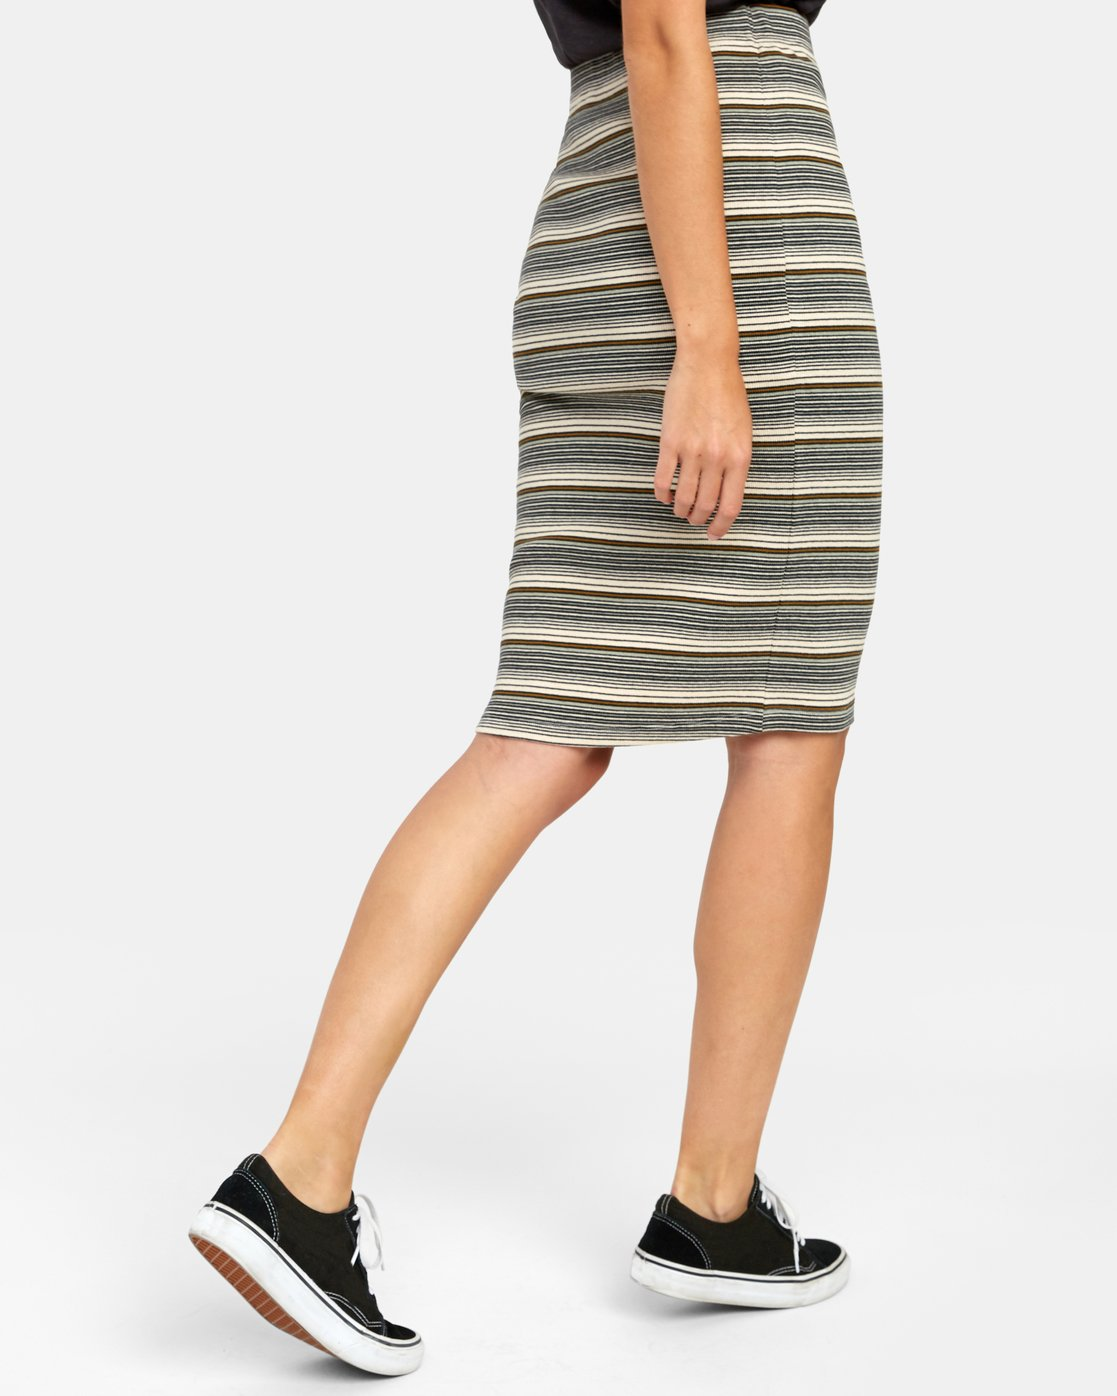 6 PICK ME UP KNIT SKIRT Brown WK021RPI RVCA